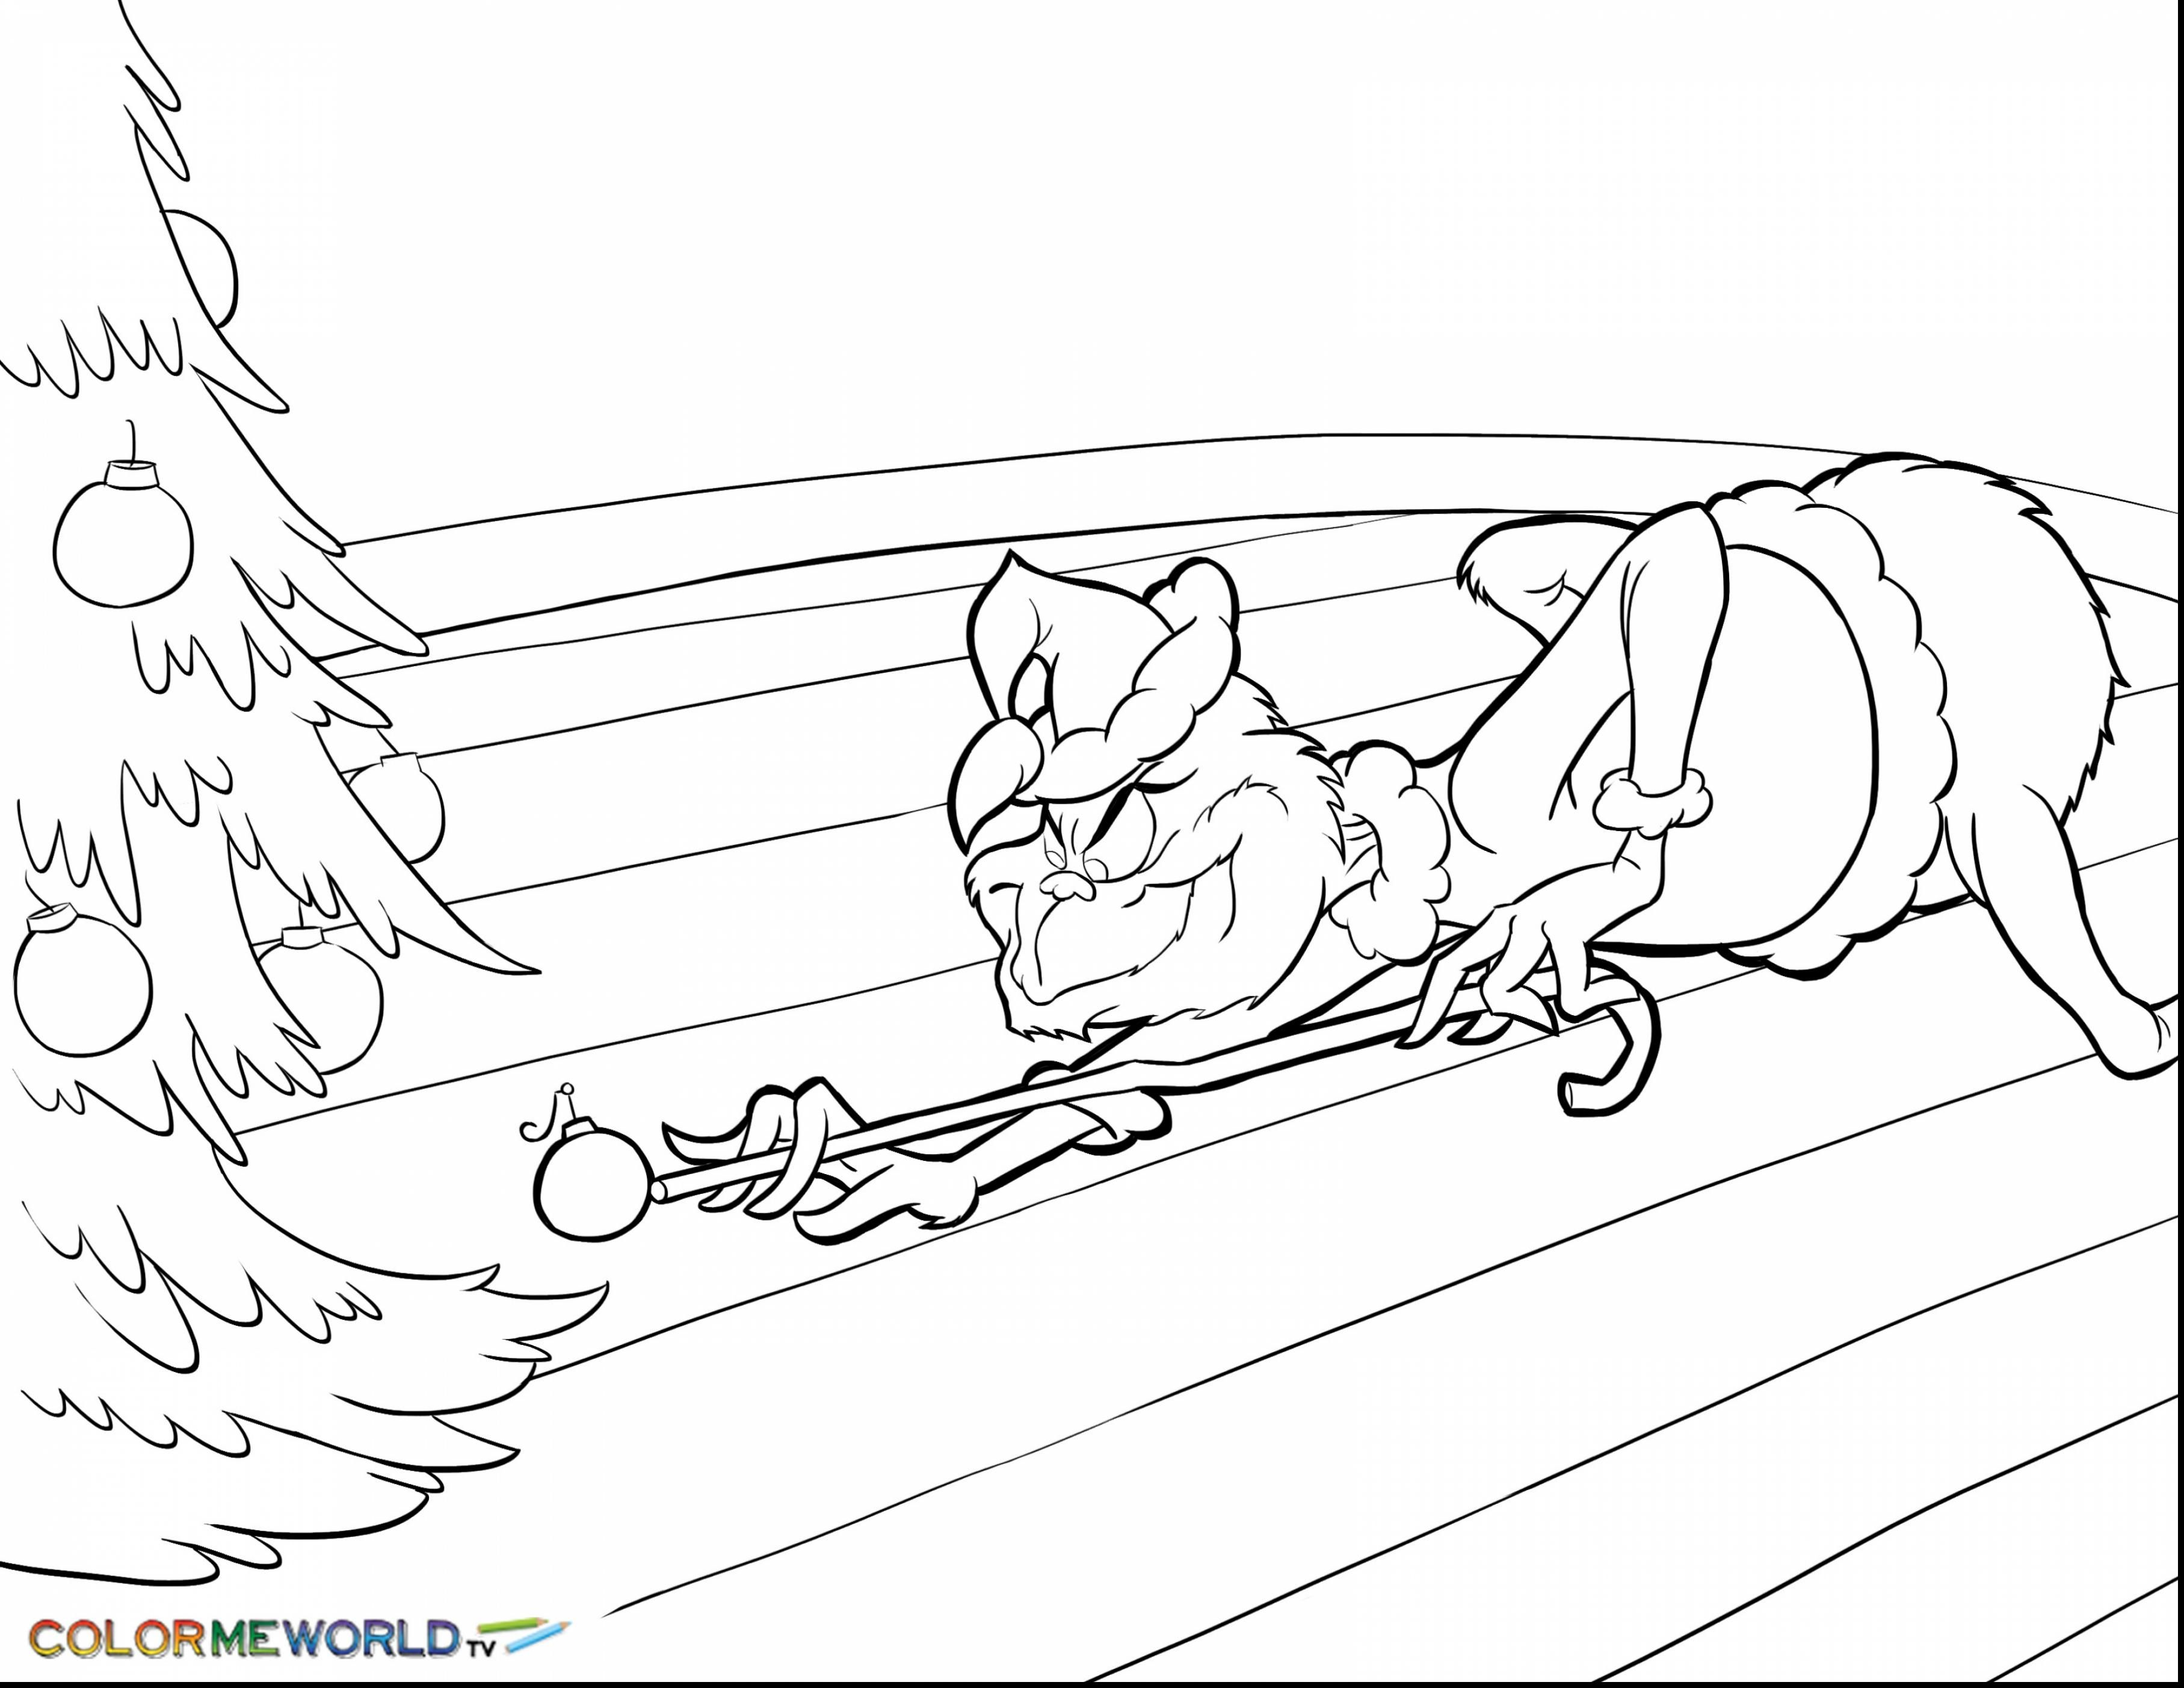 Shoes Coloring Pages 6 Free Nike Shoe Color Pages Alric Coloring Pages Grinch Coloring Pages Coloring Pages Christmas Coloring Pages